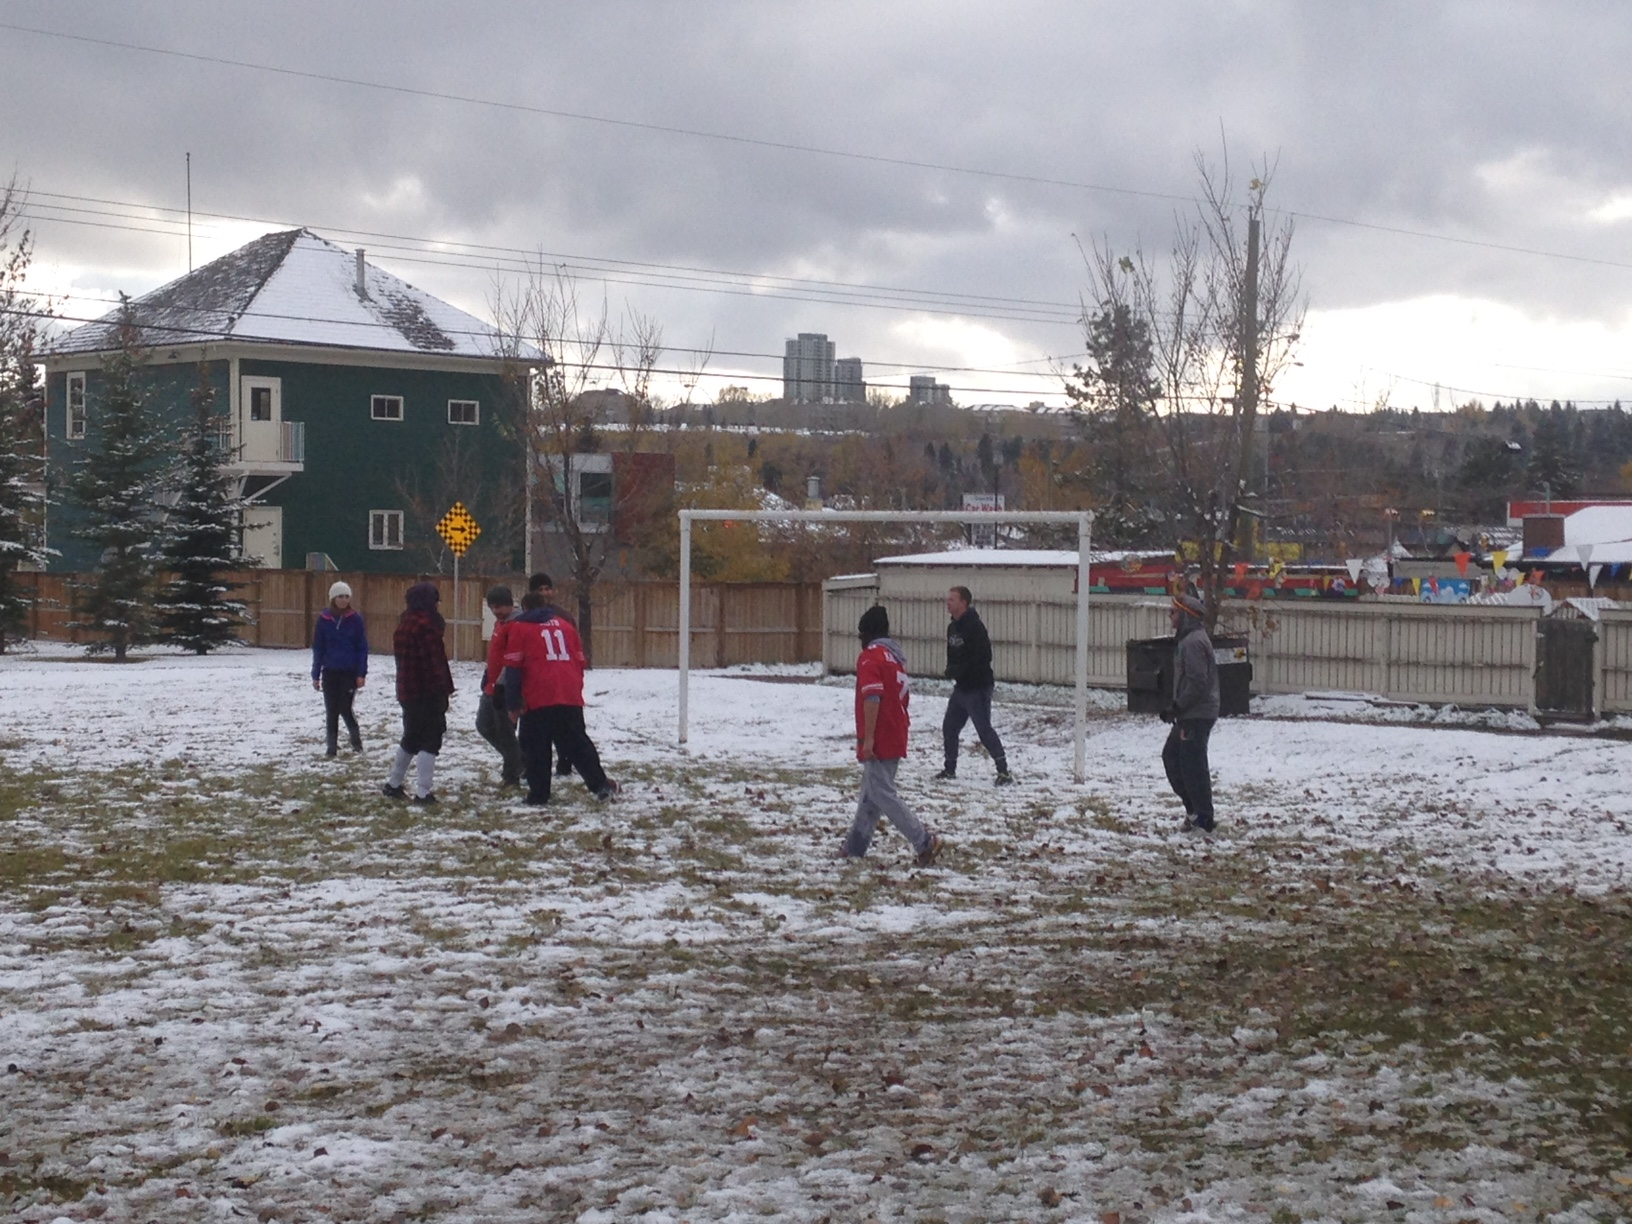 Grand Trunk Park annual Turkey Bowl happens on Thanksgiving Day snow or shine! The snowman was in the middle of the field, but that didn't seem to bother anyone.